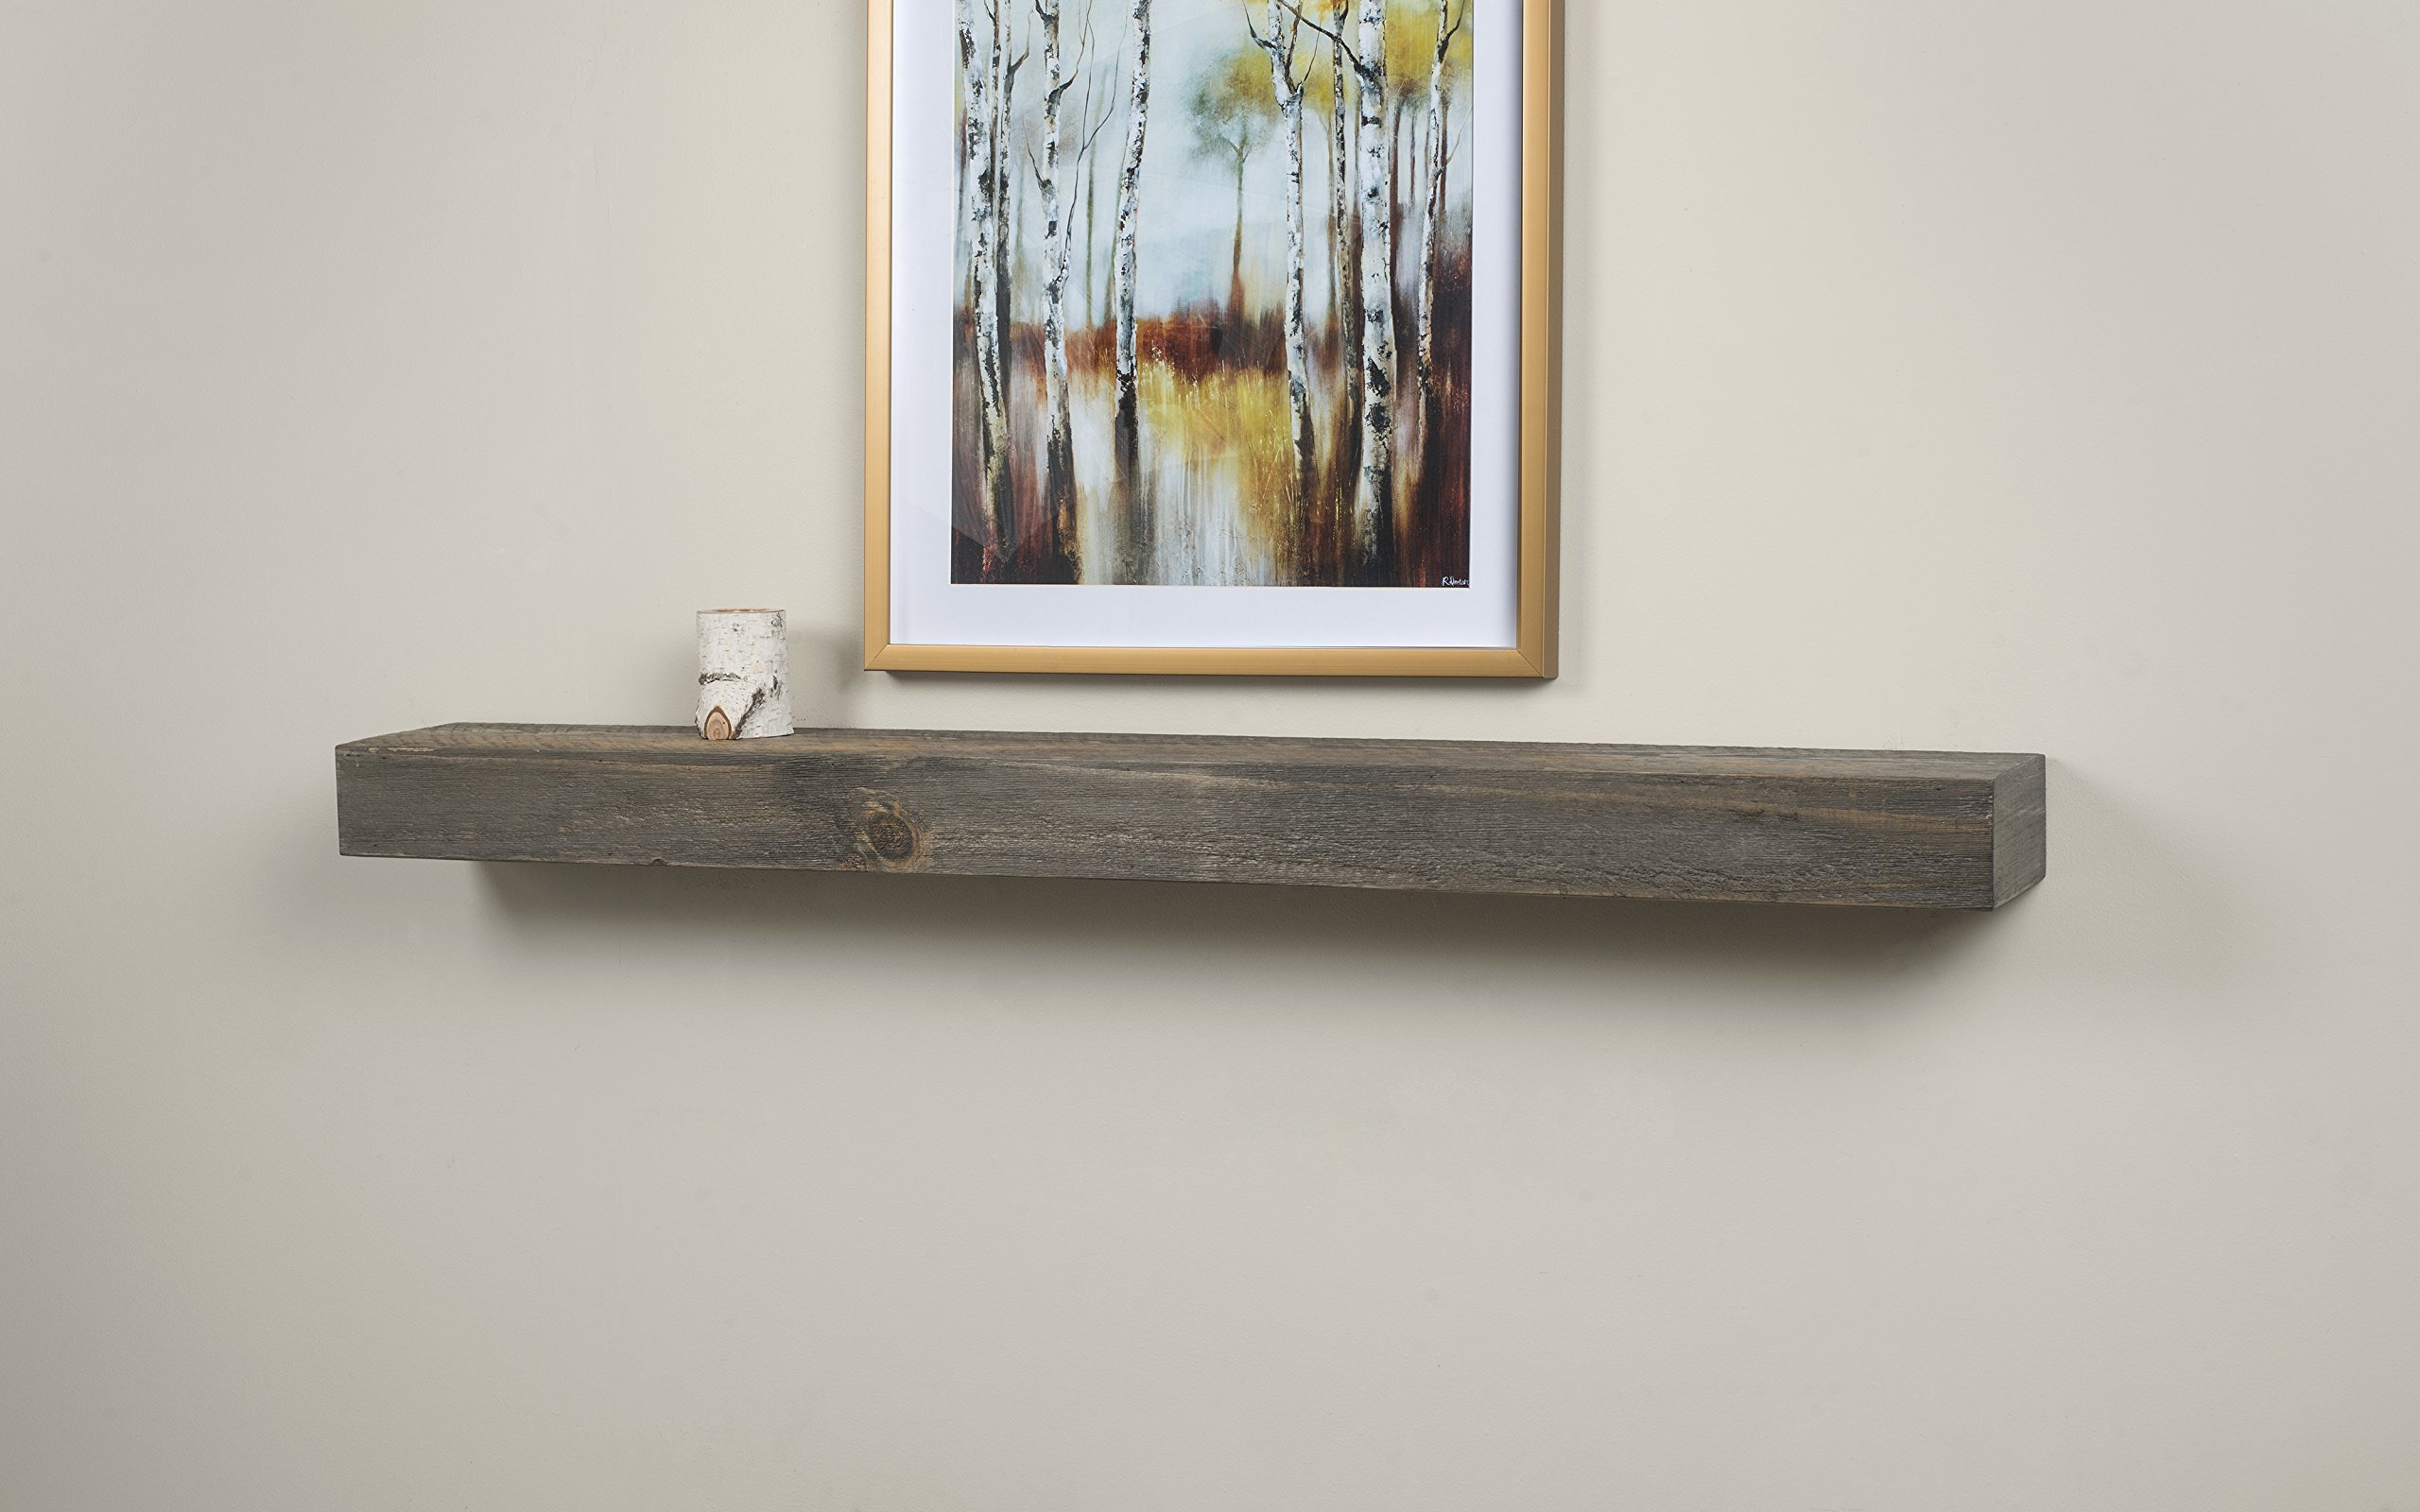 Vail 60-Inch Wood Fireplace Mantel Shelf, Driftwood by Mantels Direct